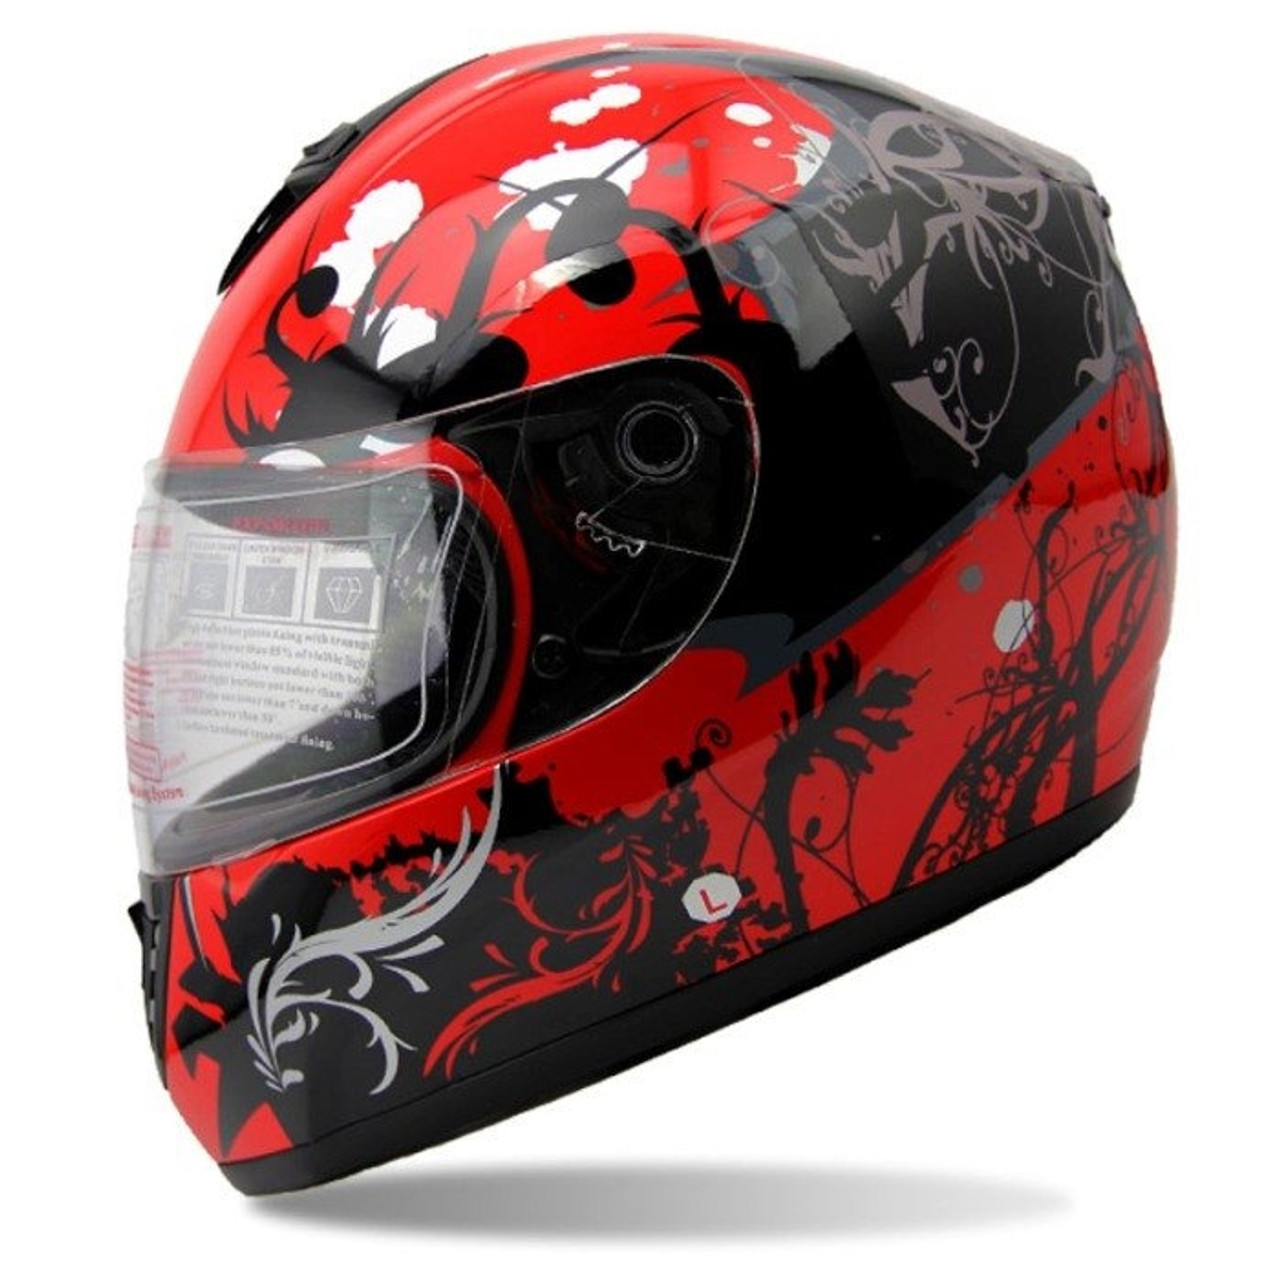 SPEEDING FULL FACE RED HELMET